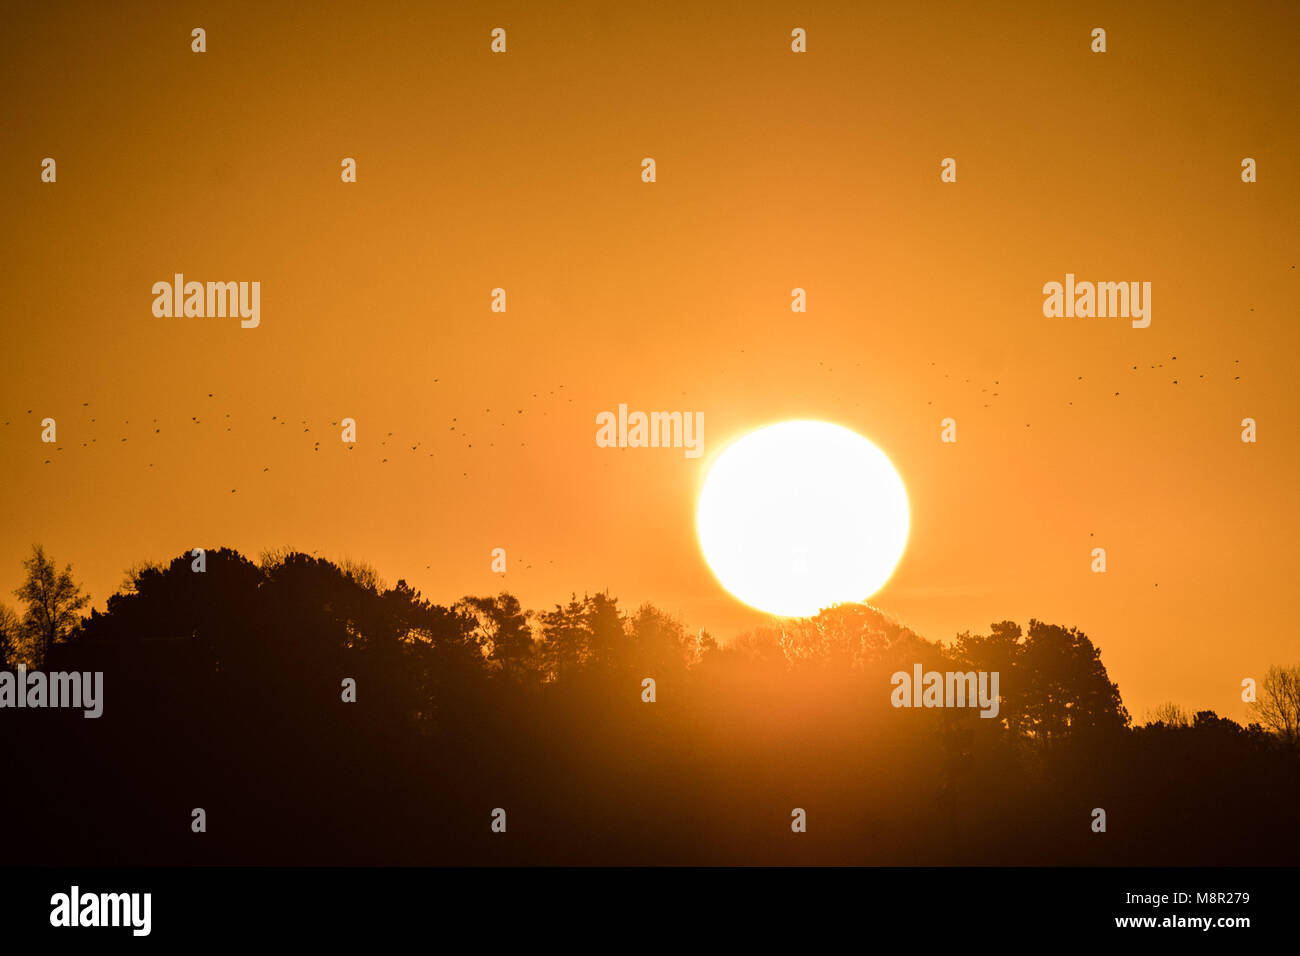 Aberystwyth Wales UK, Tuesday 20 March 2018 UK Weather: The sun rises gloriously on Spring Equinox morning in Aberystwyth - Stock Image